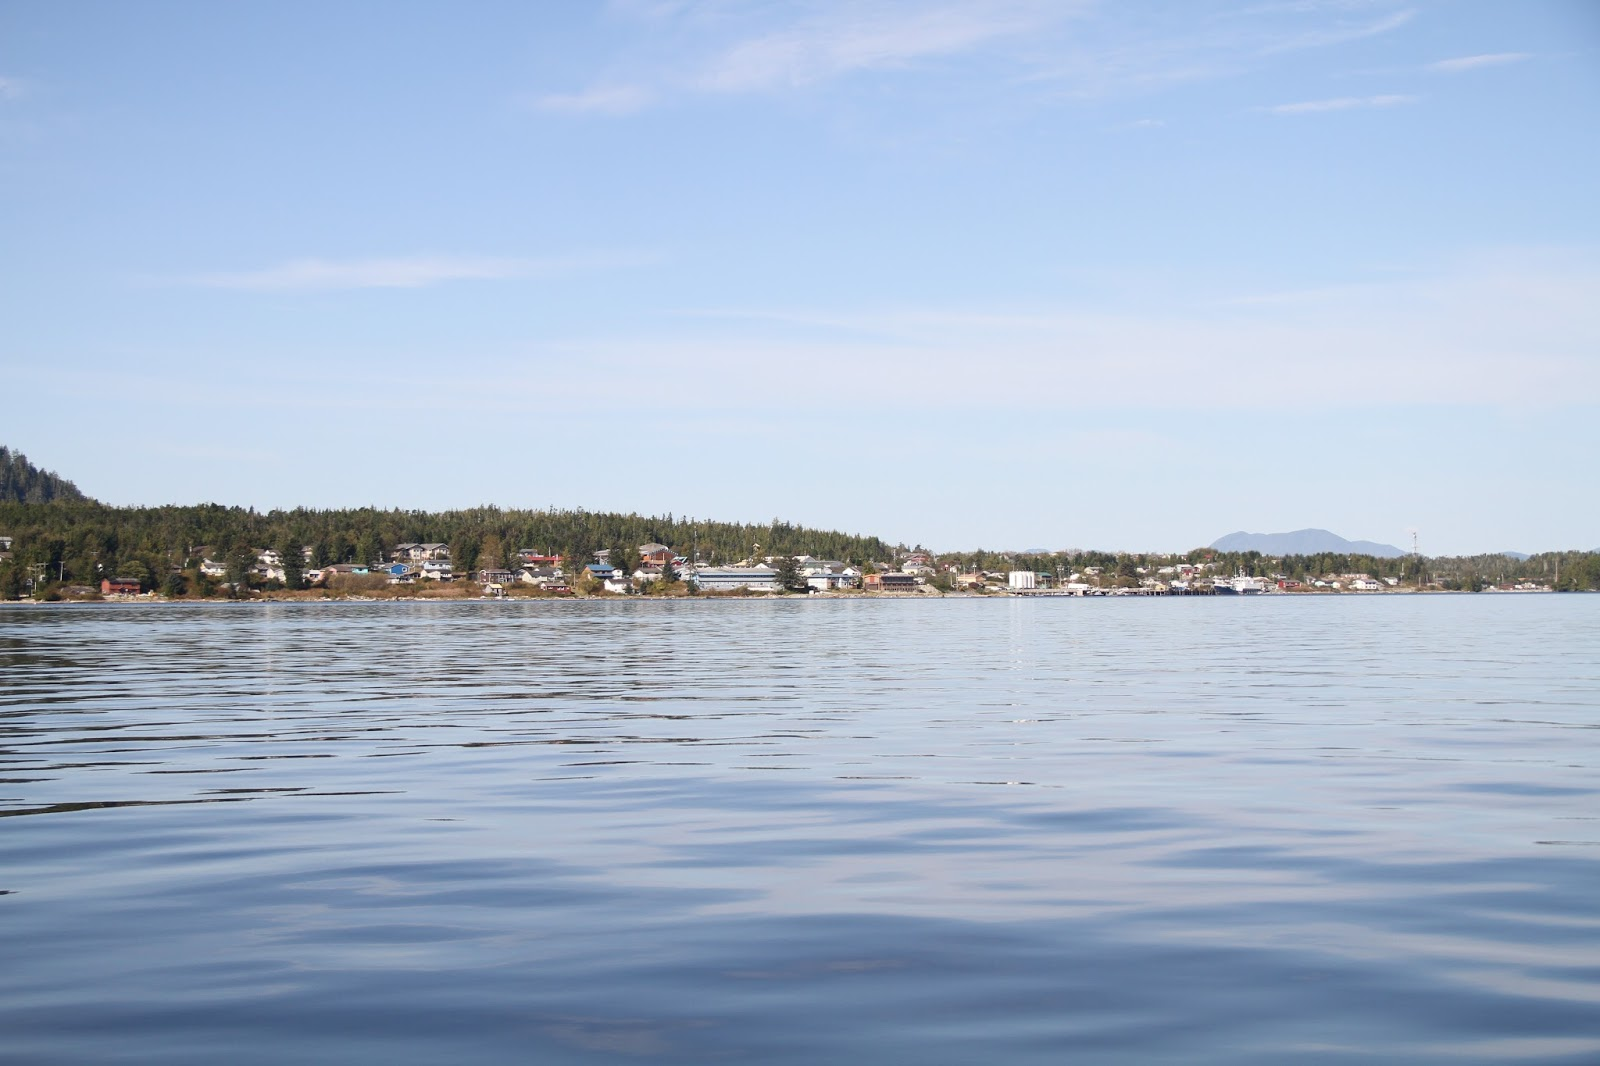 A great view of Campbell Island and the Bella Bella village site